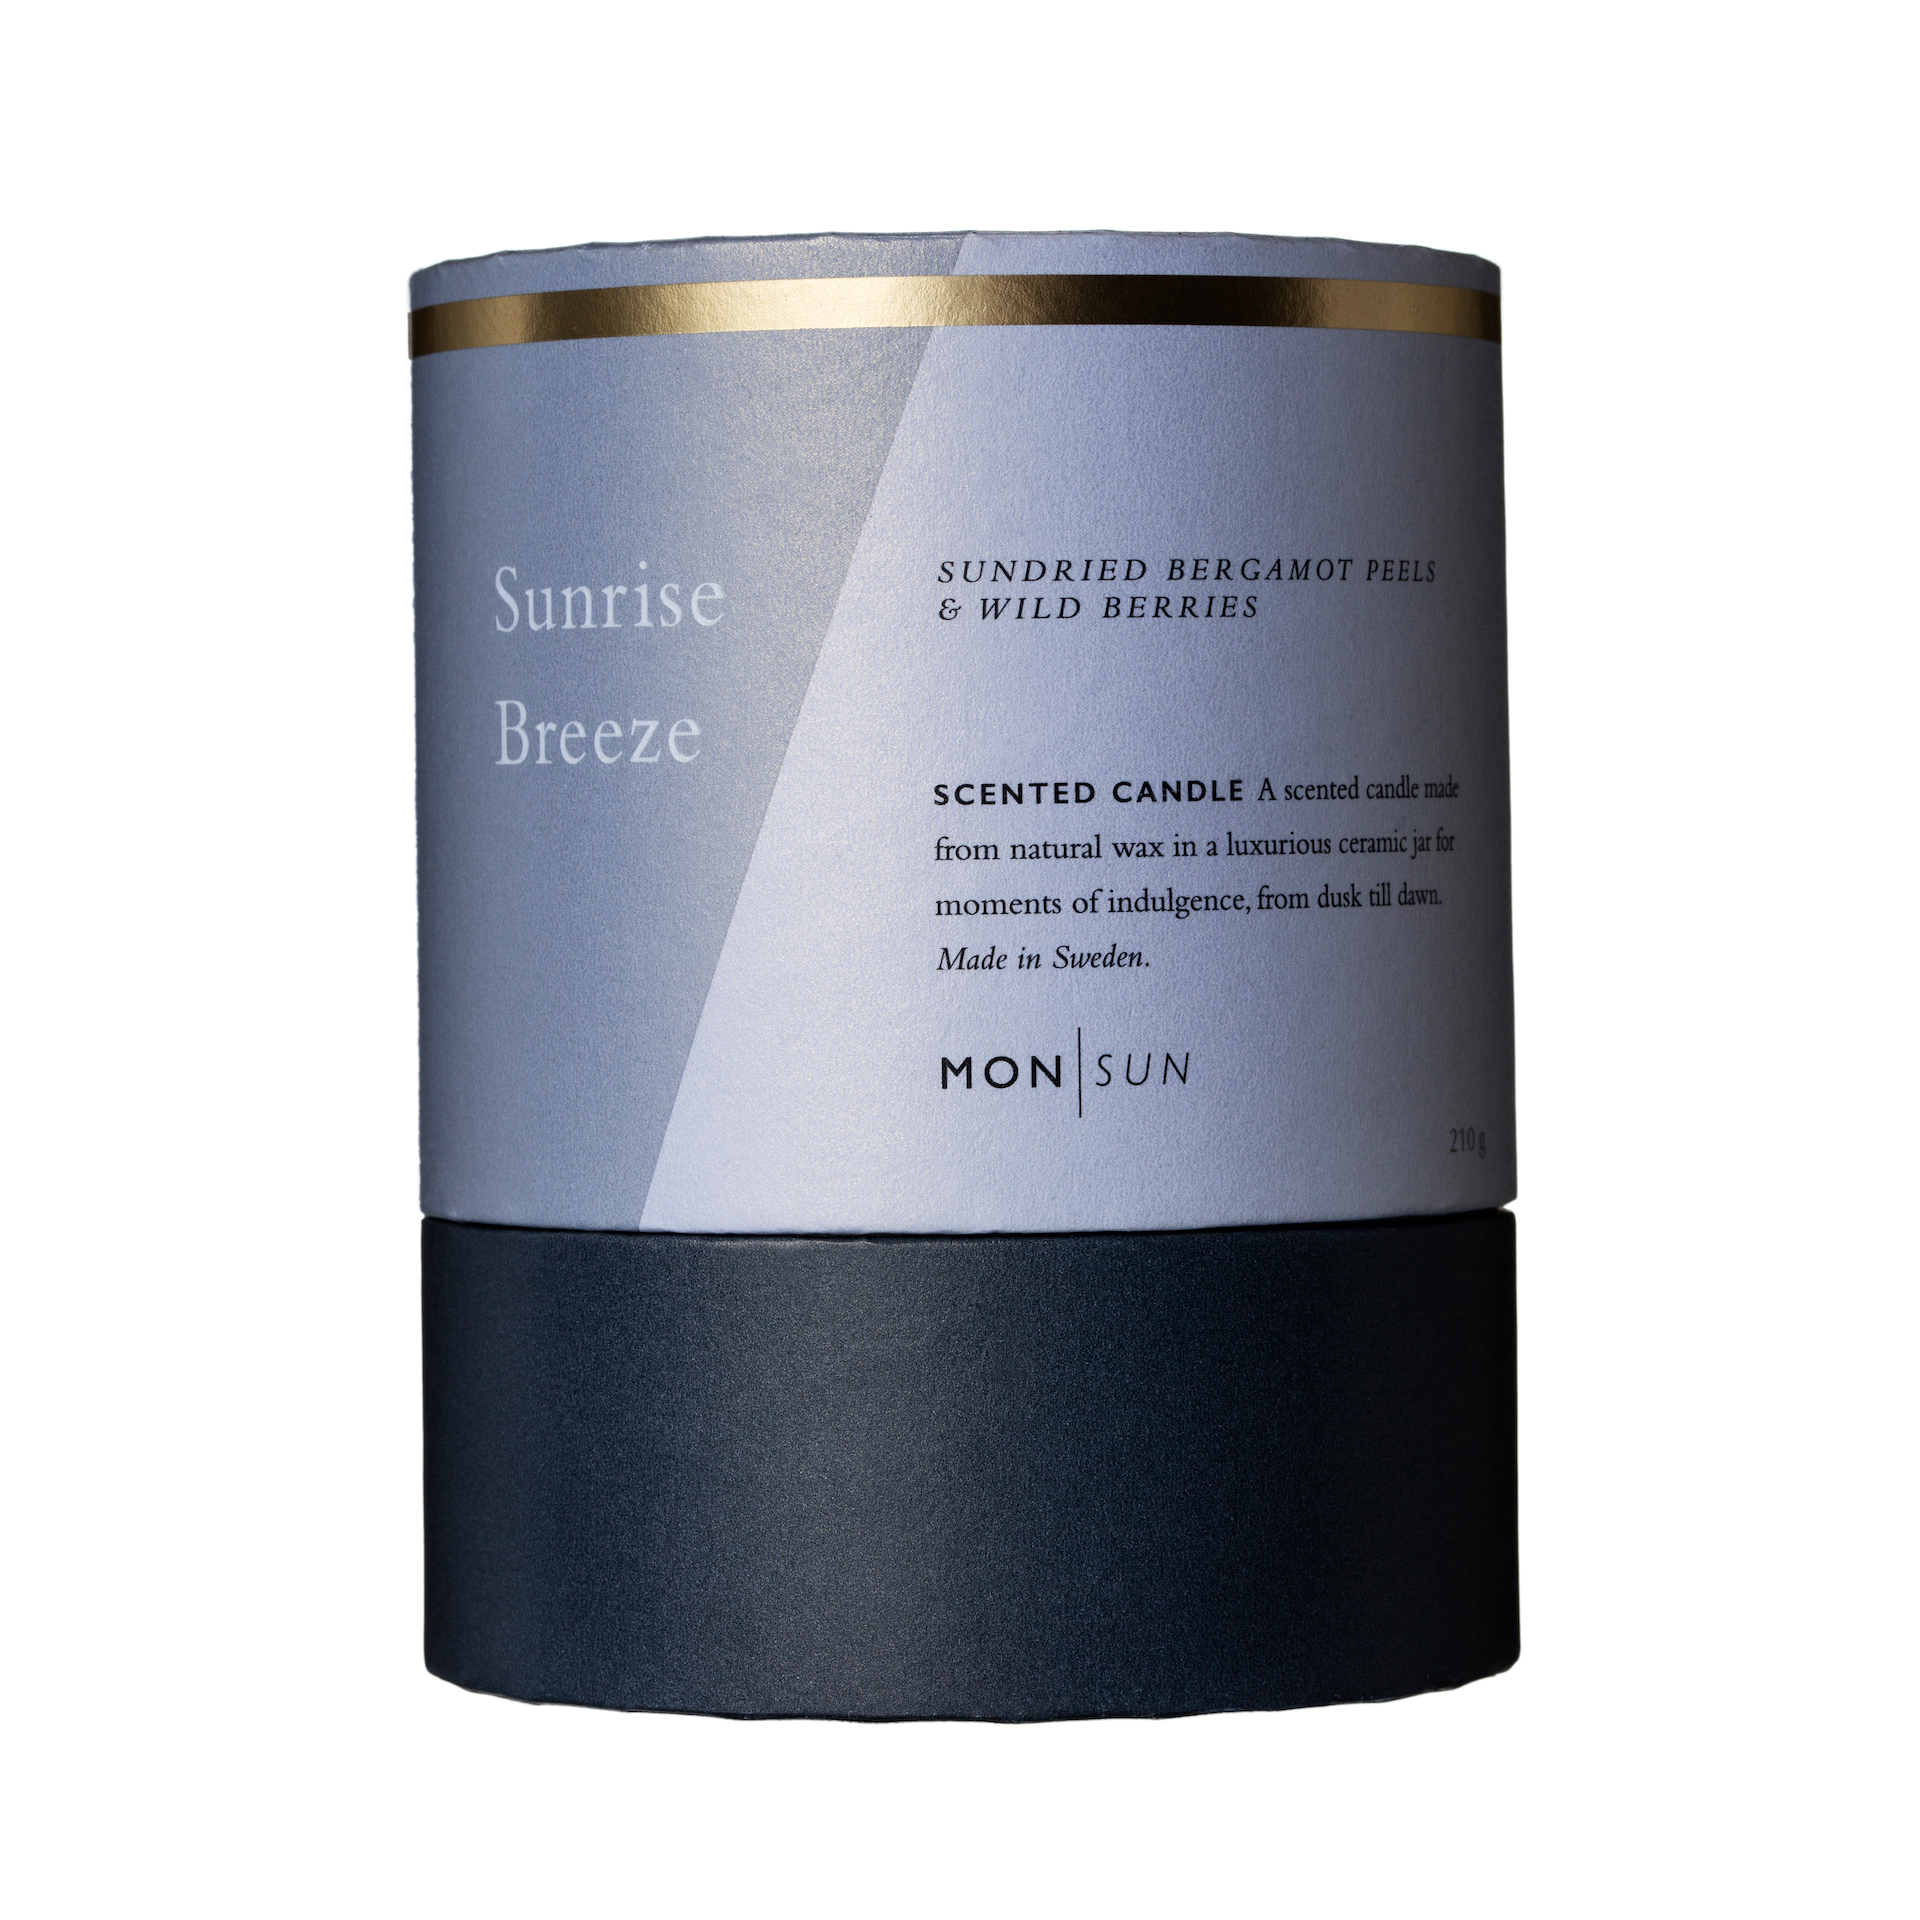 Sunrise Breeze Mineral & Moist Scented Candle 210g